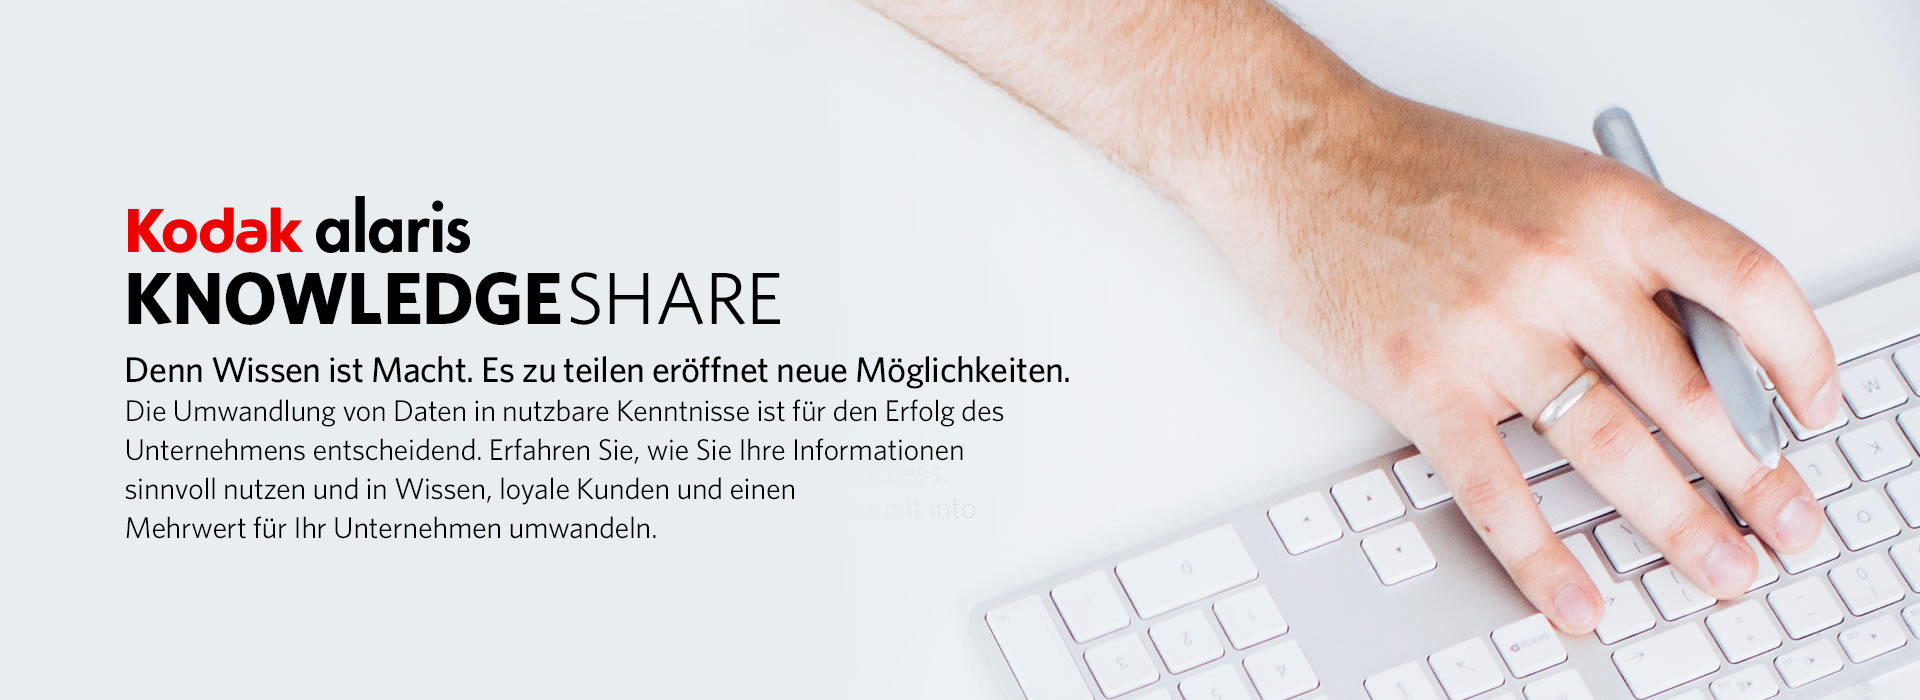 KnowledgeShare_1920x700_de